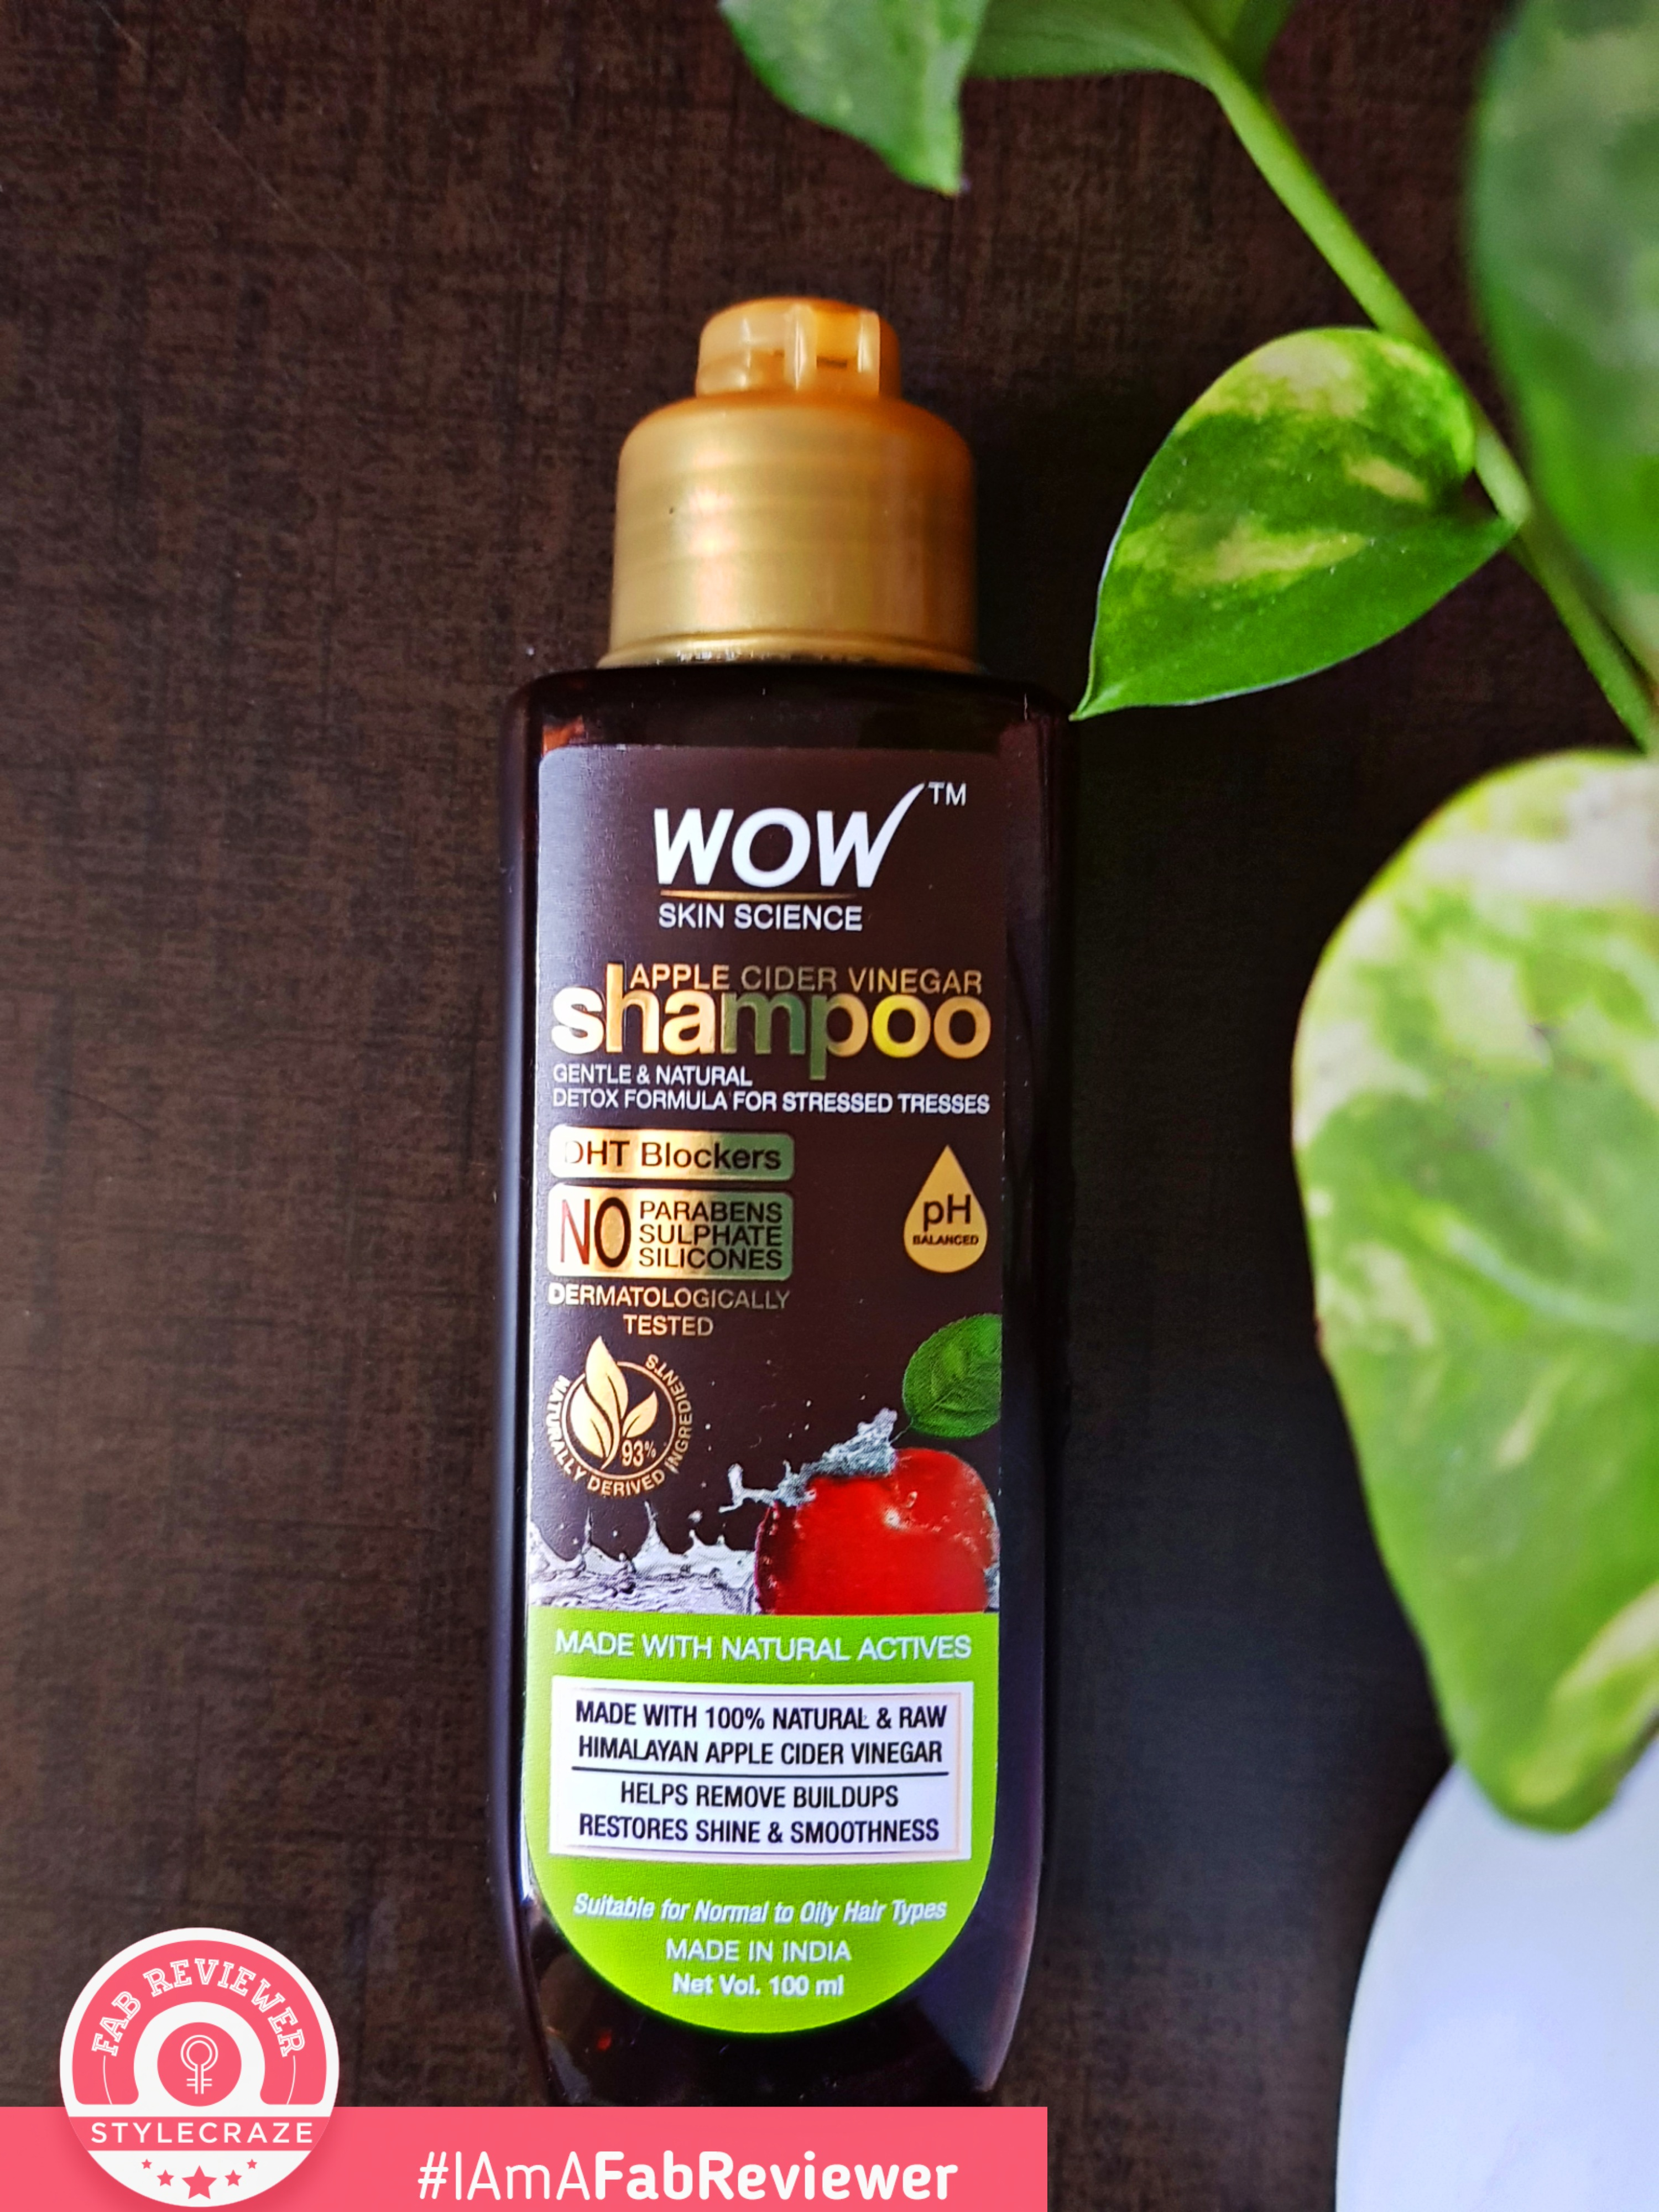 WOW Skin Science Apple Cider Vinegar Shampoo - No Parabens & Sulphate - 300 ml-Complete HairCare Package-By dressup_